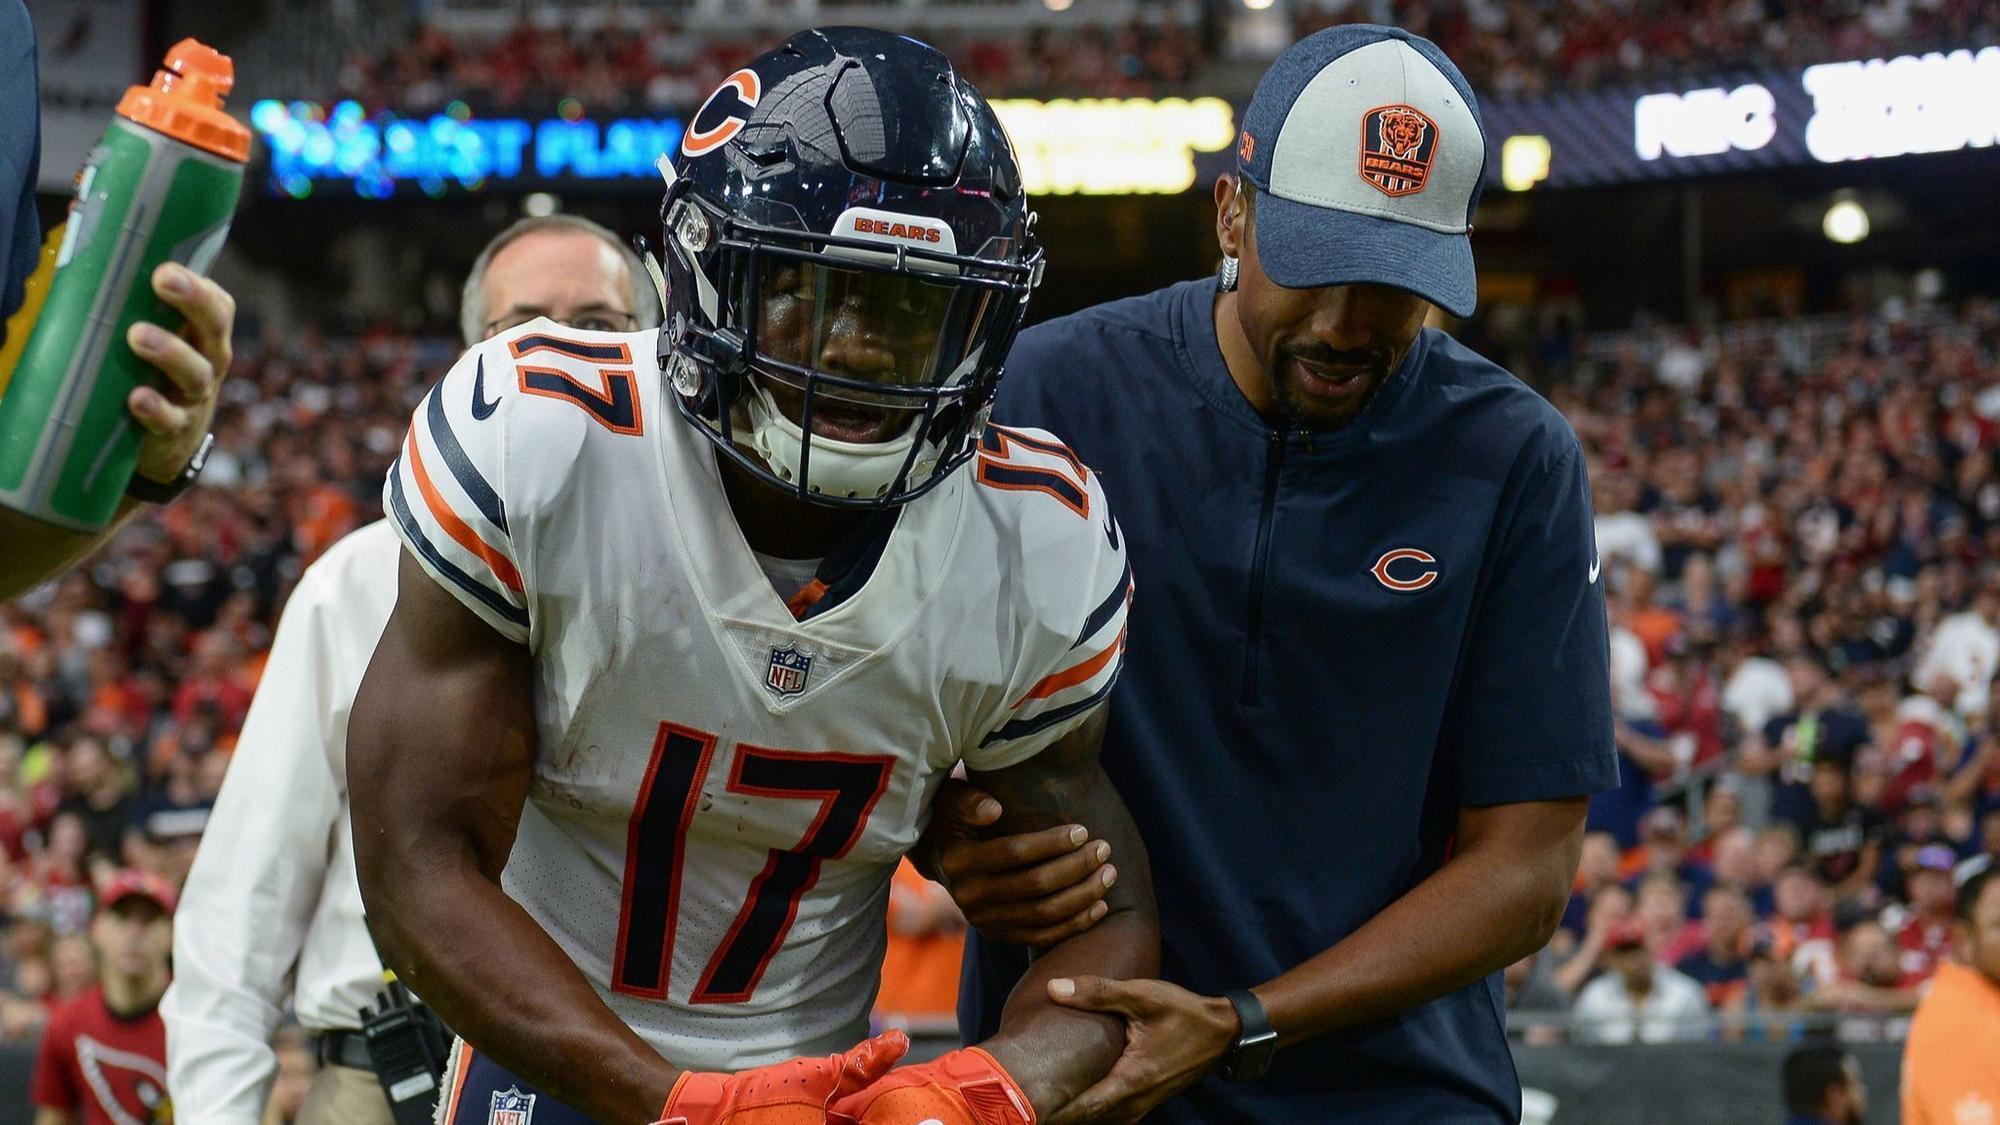 Ct-spt-bears-anthony-miller-shoulder-injury-20180924